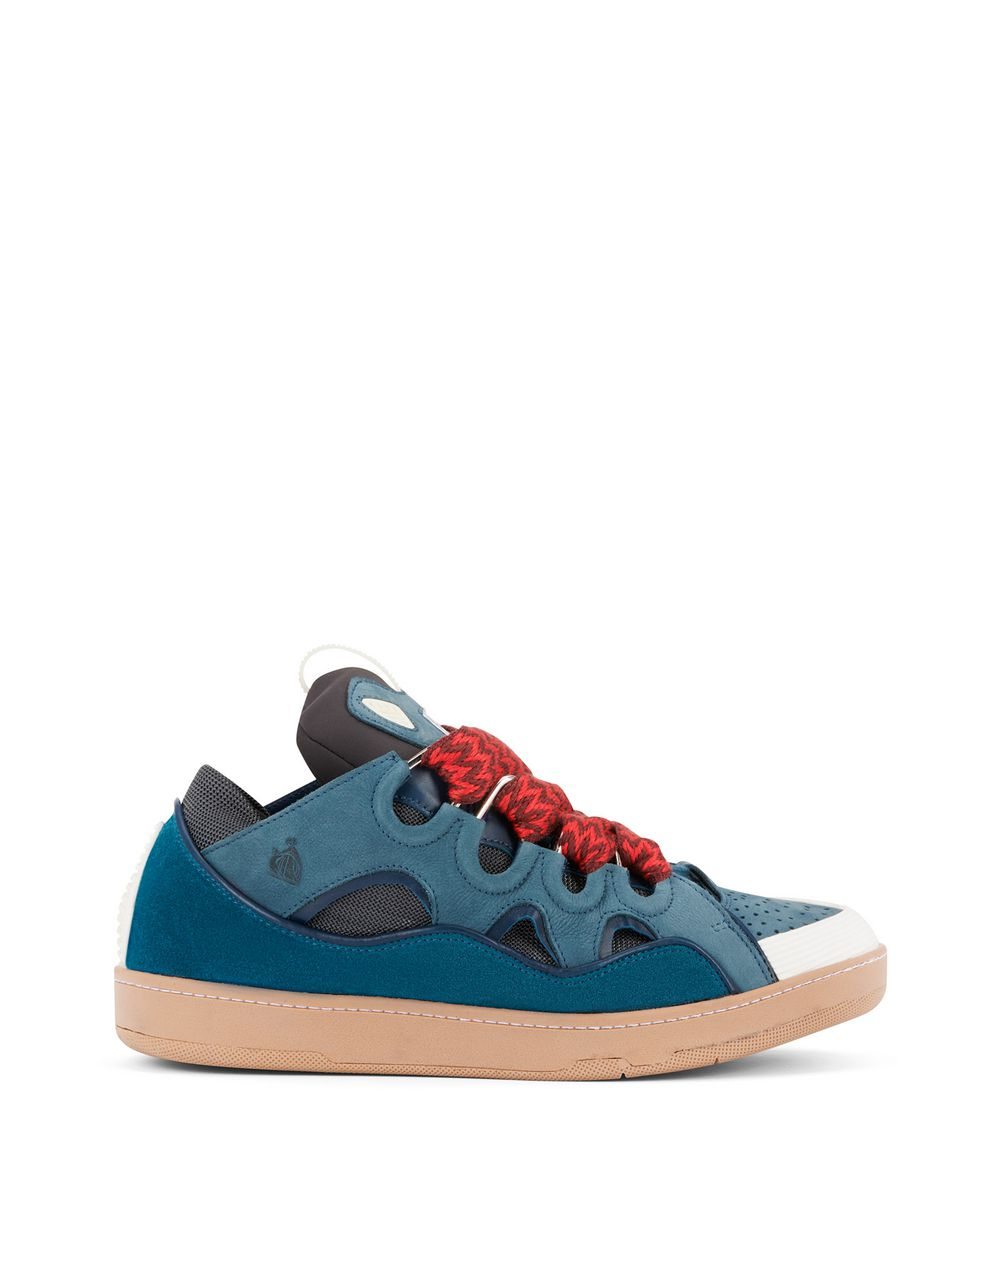 LEATHER CURB TRAINERS - Lanvin